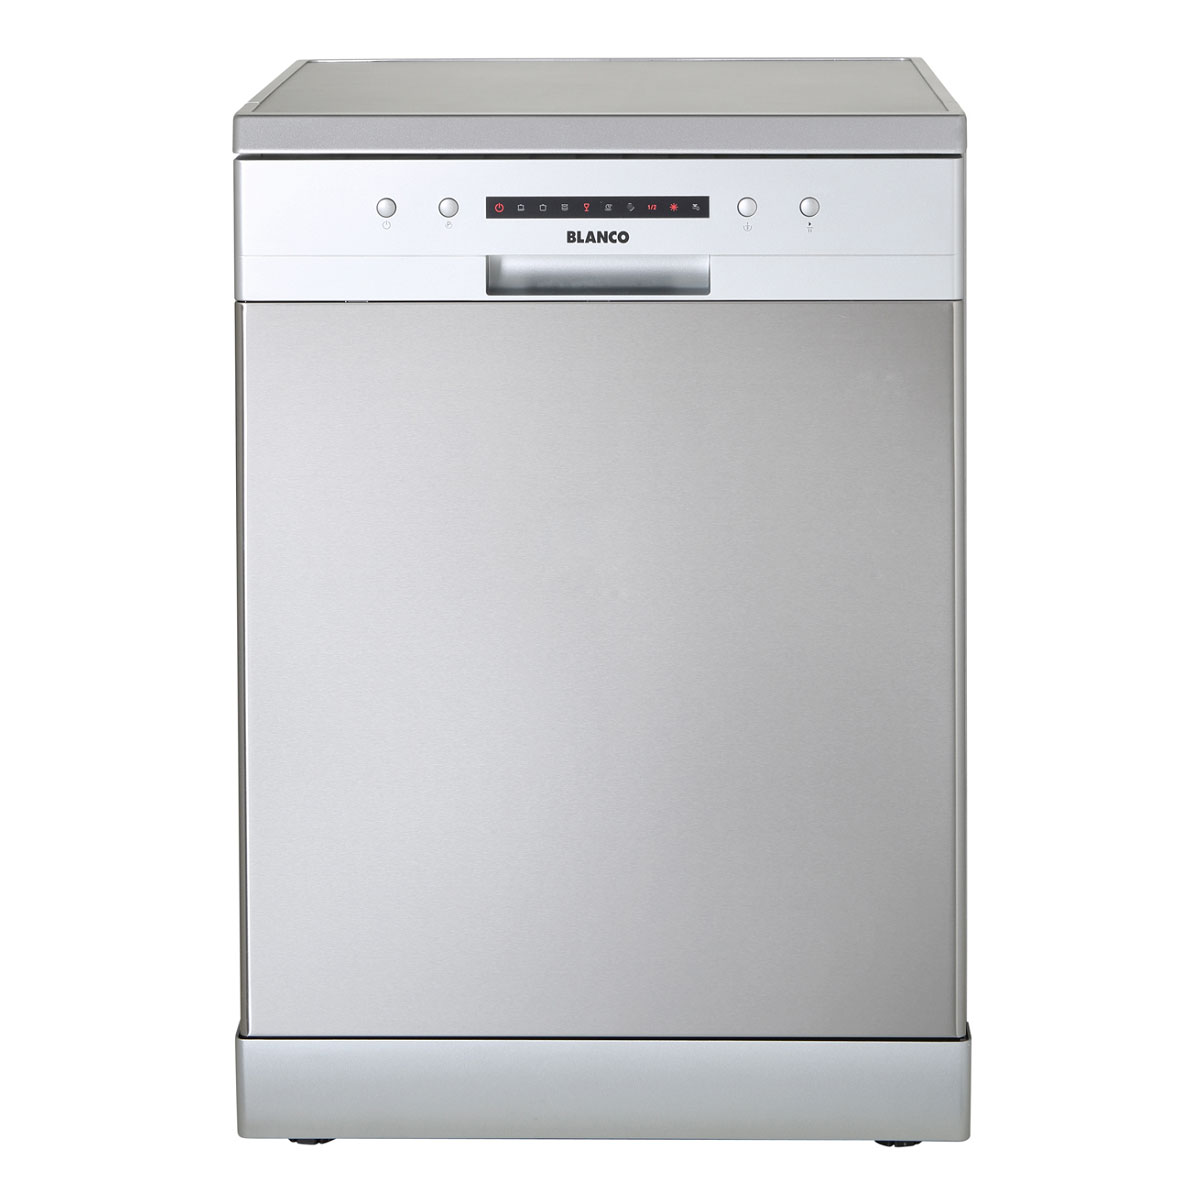 how to connect omega benchtop dishwasher